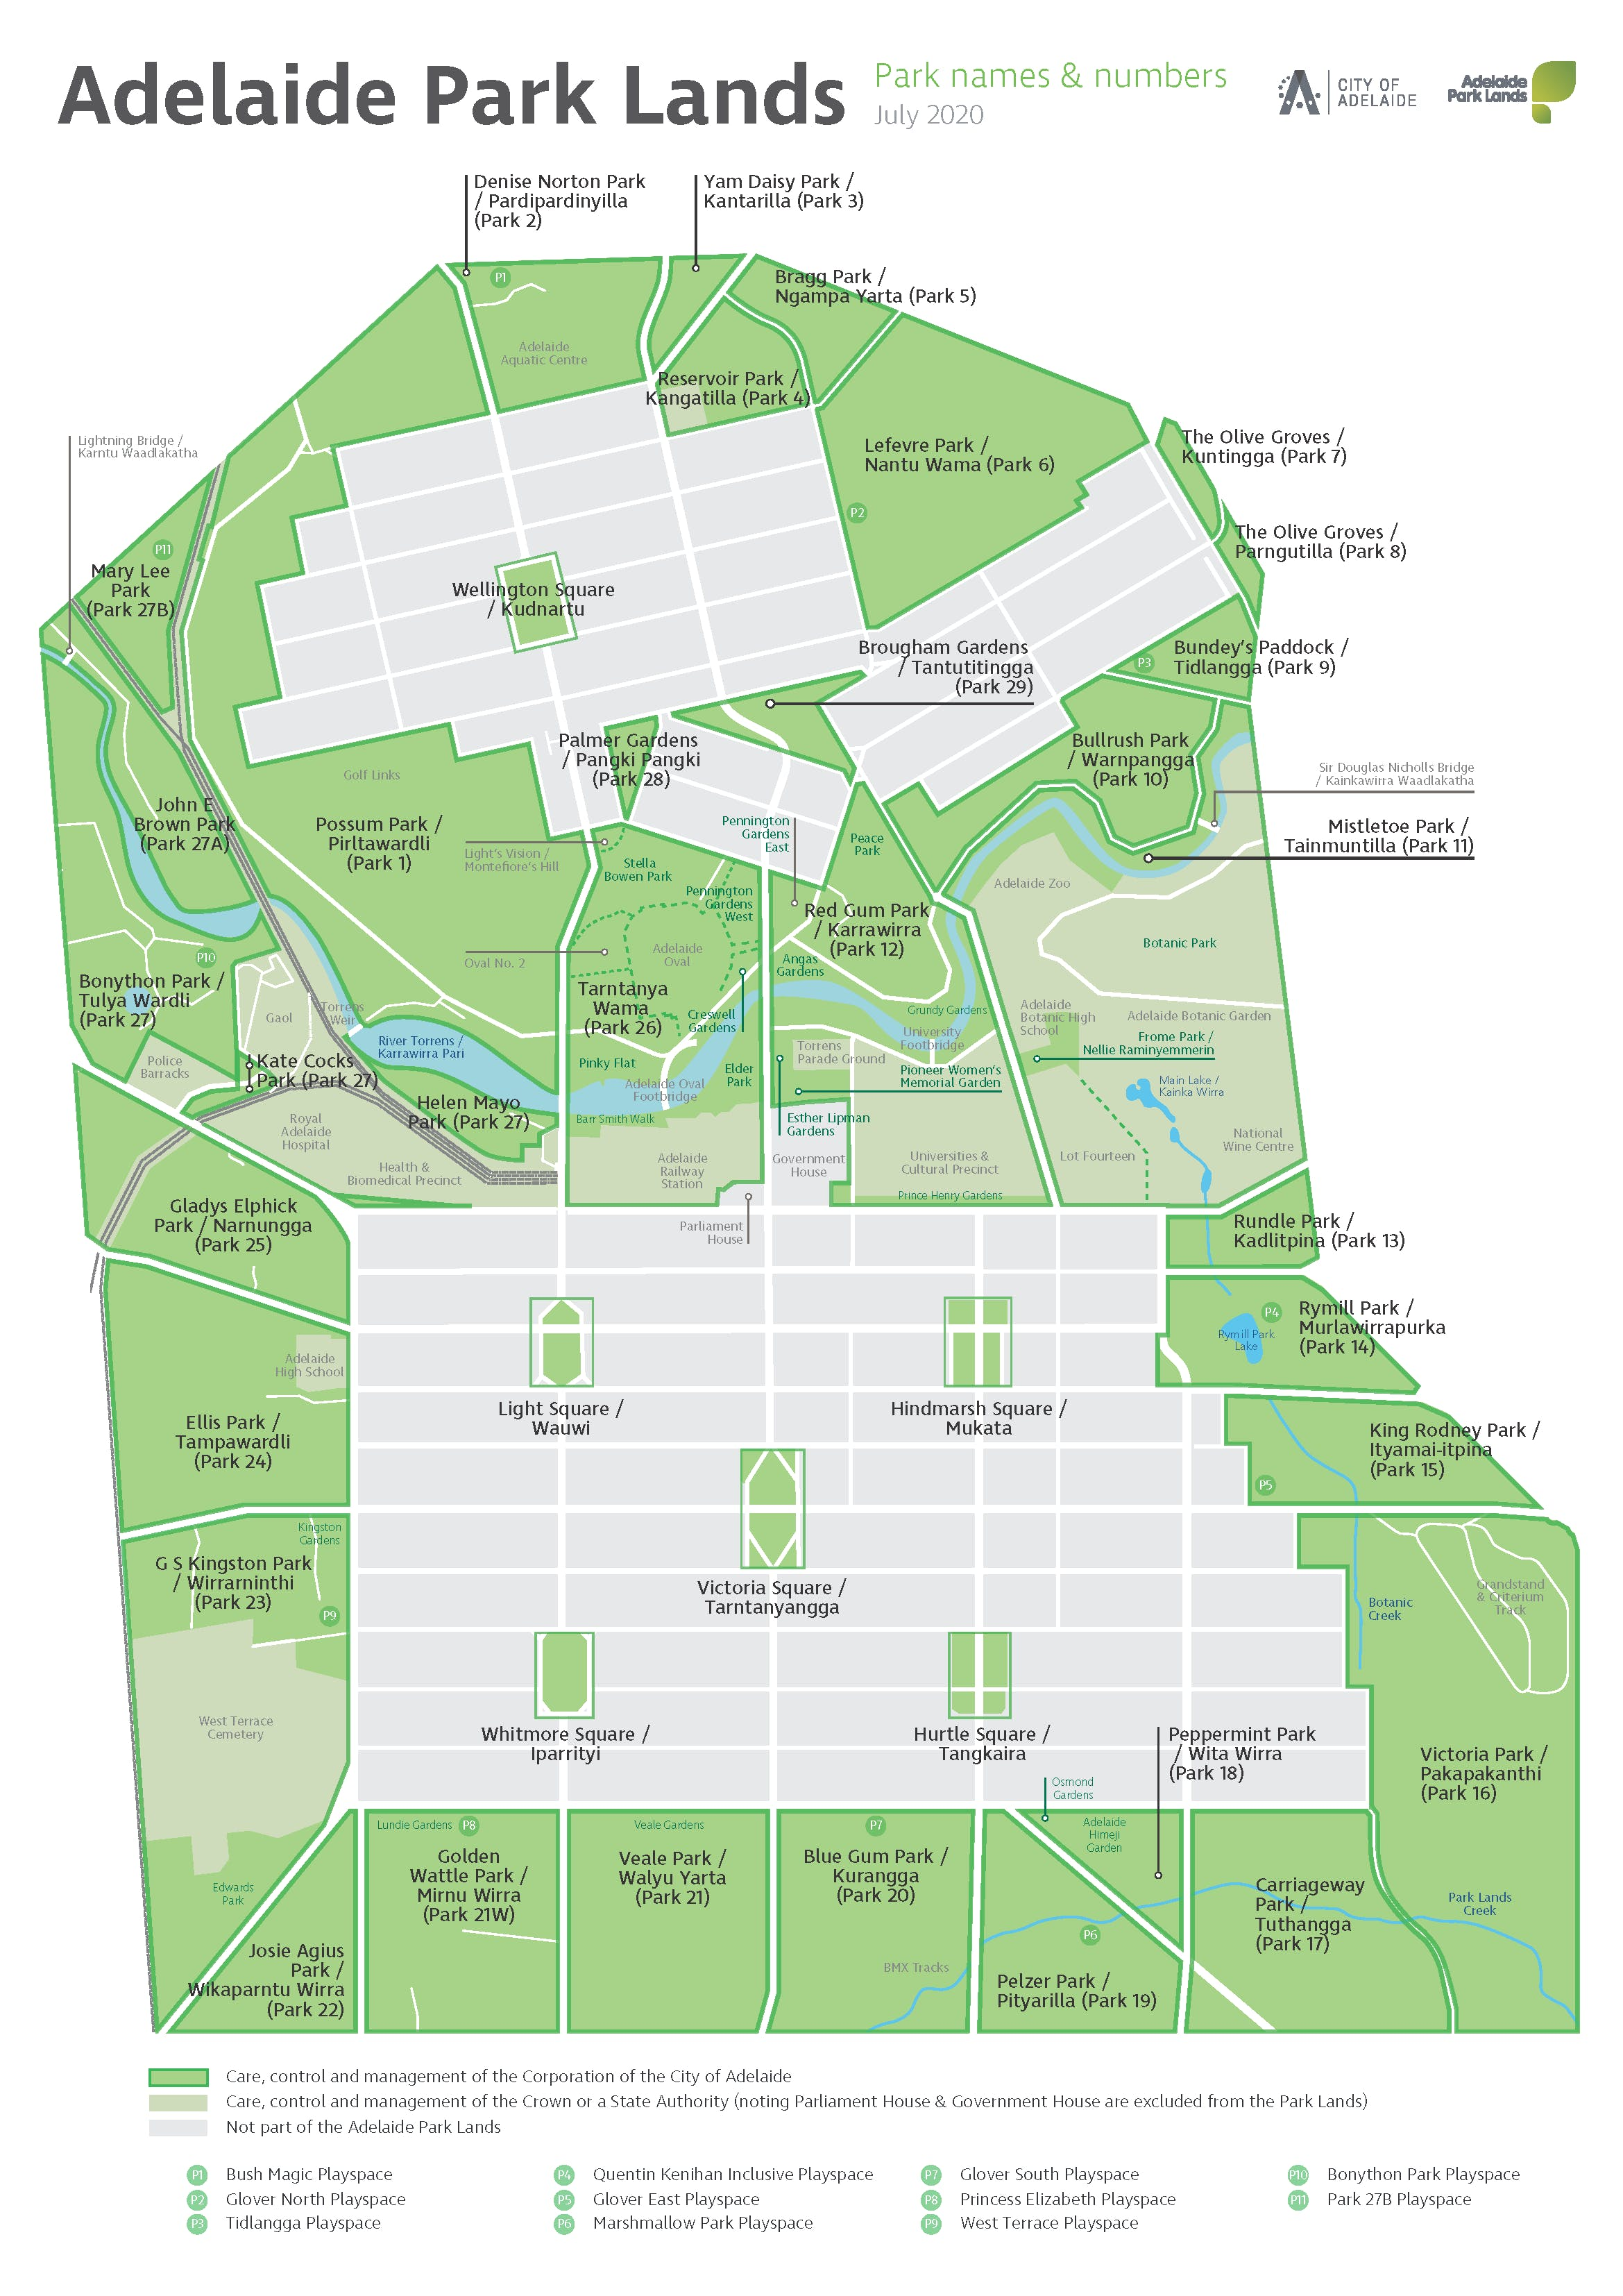 Names of individual parks and playspaces in the Adelaide Park Lands